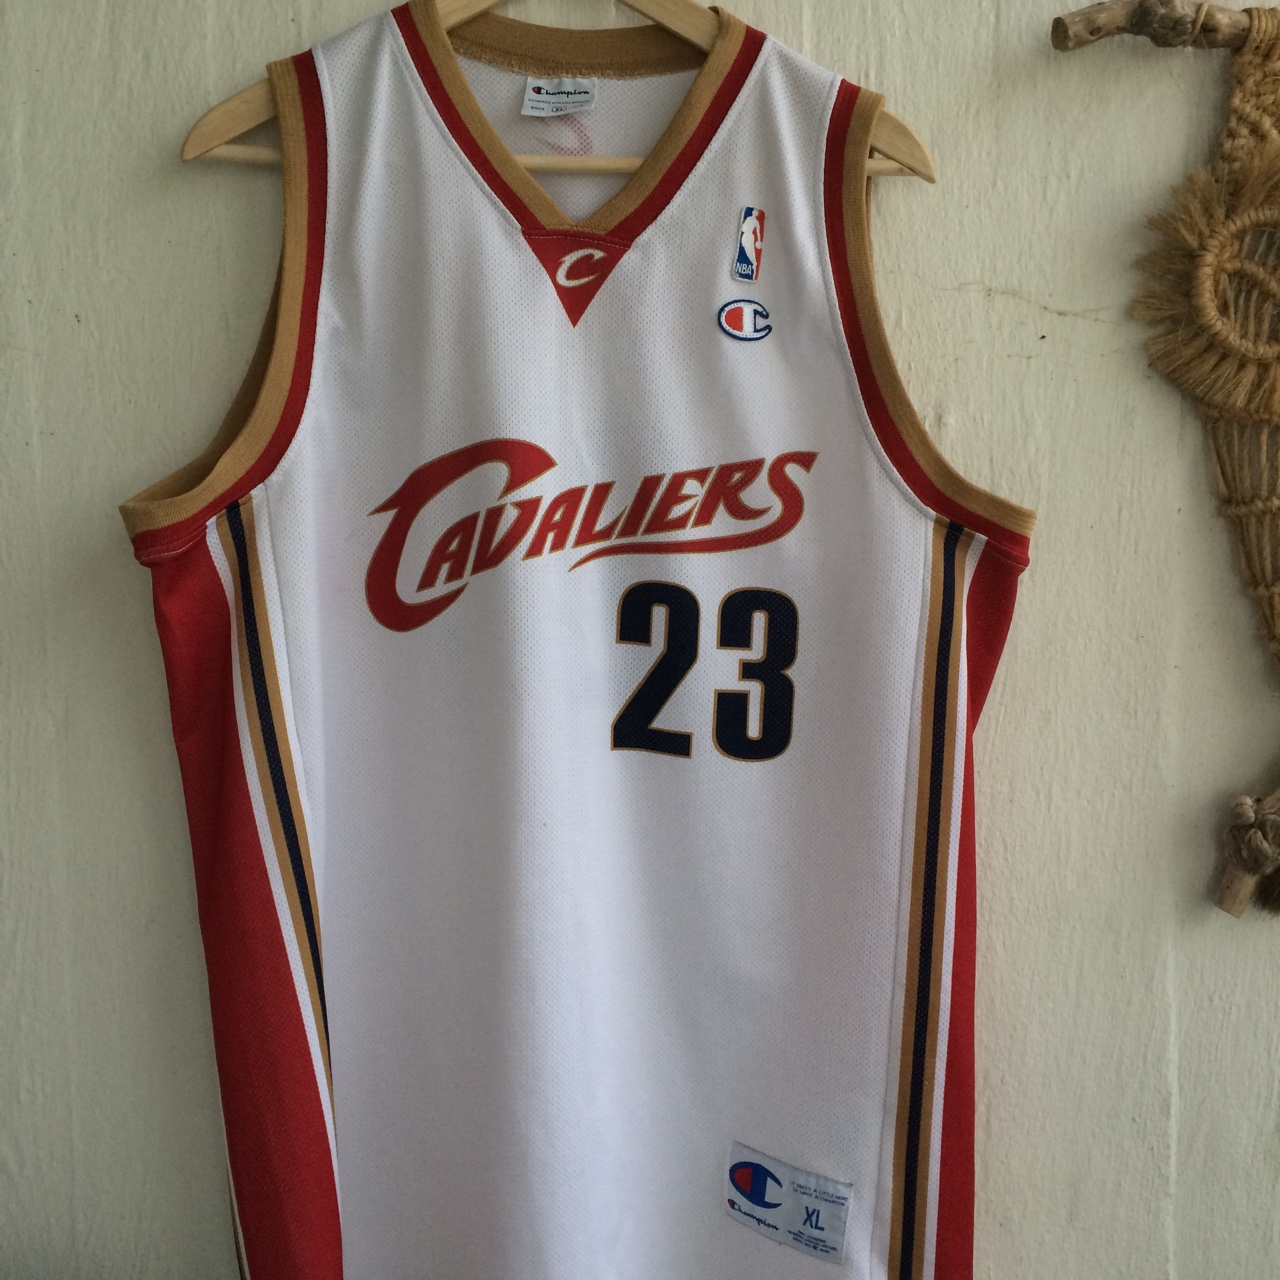 finest selection f033a a97cf CAVALIERS OG CHAMPION LEBRON JAMES 23 NBA ...